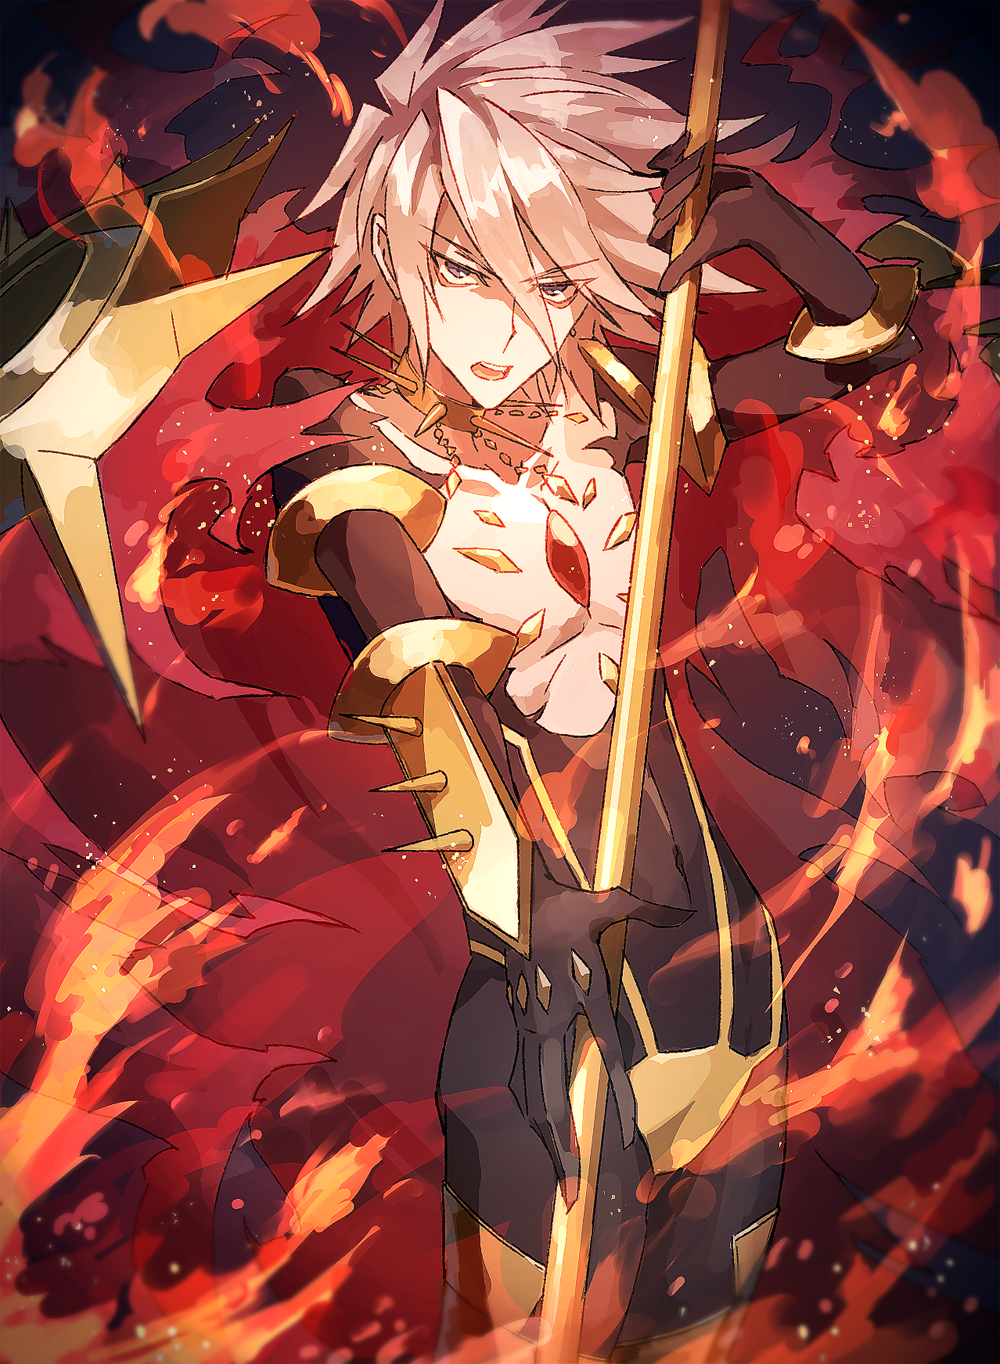 Karna Fate | Xtras | Fate servants, Fate zero, Fate stay night